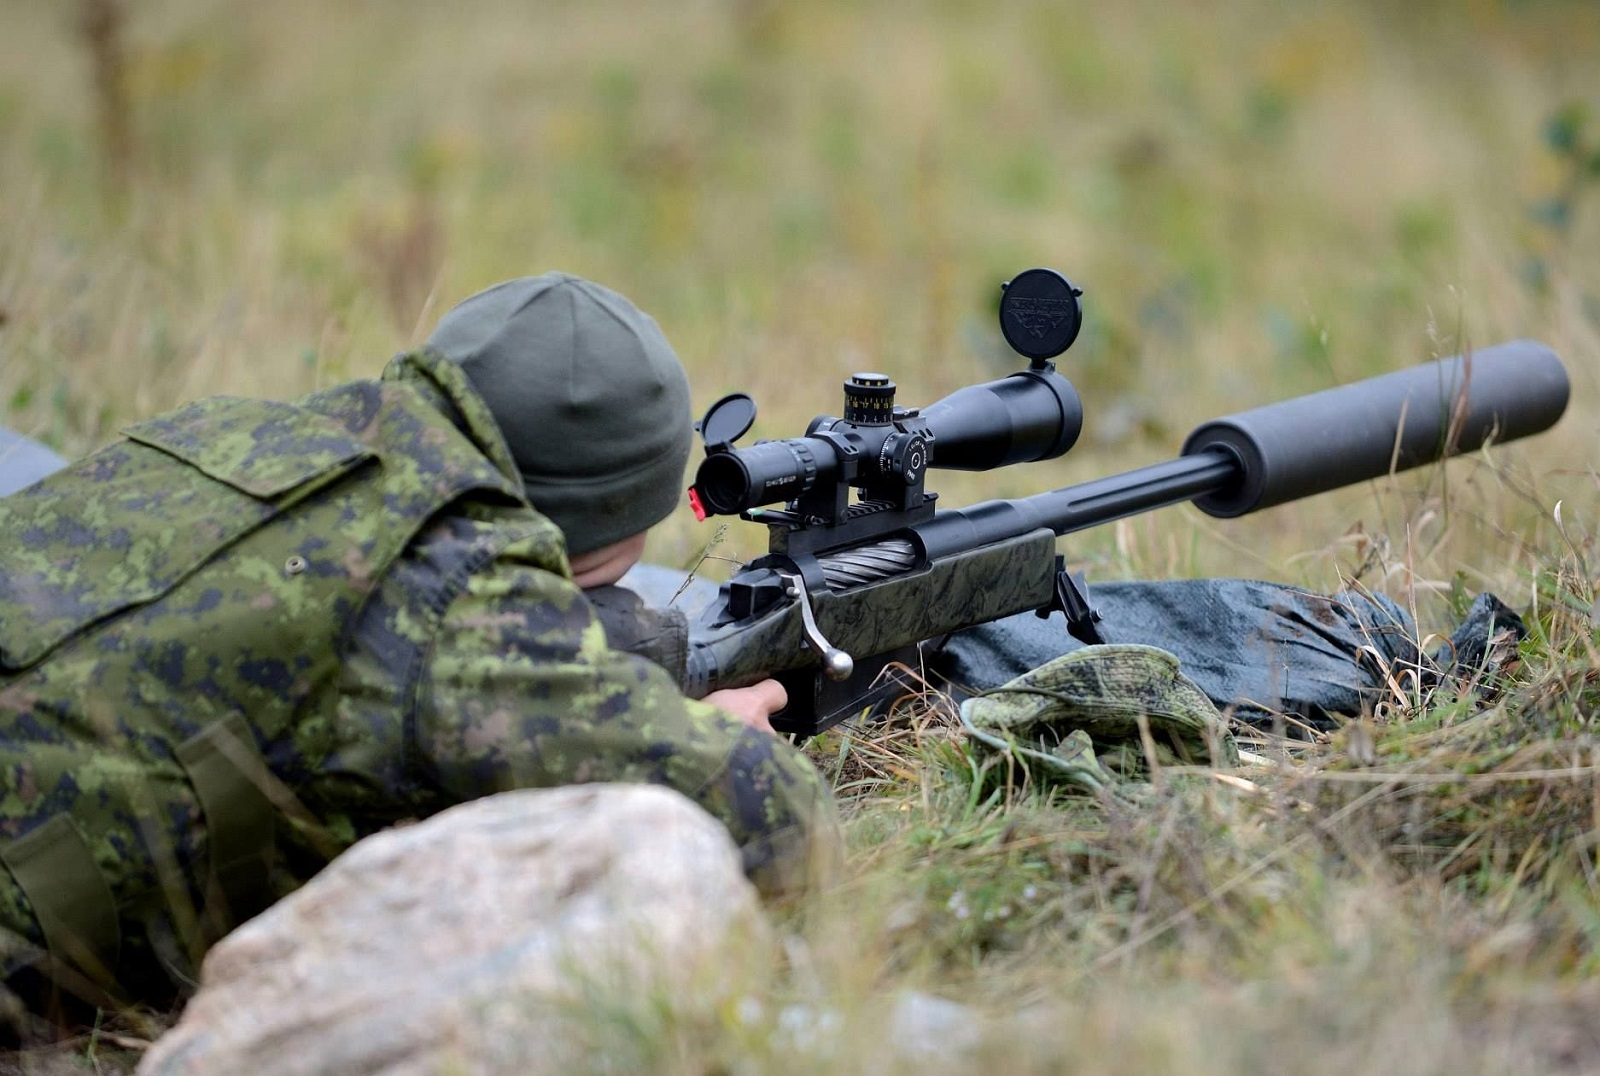 Tac-50: A.50 Caliber Record-Breaking Rifle Navy SEALs and Snipers Love